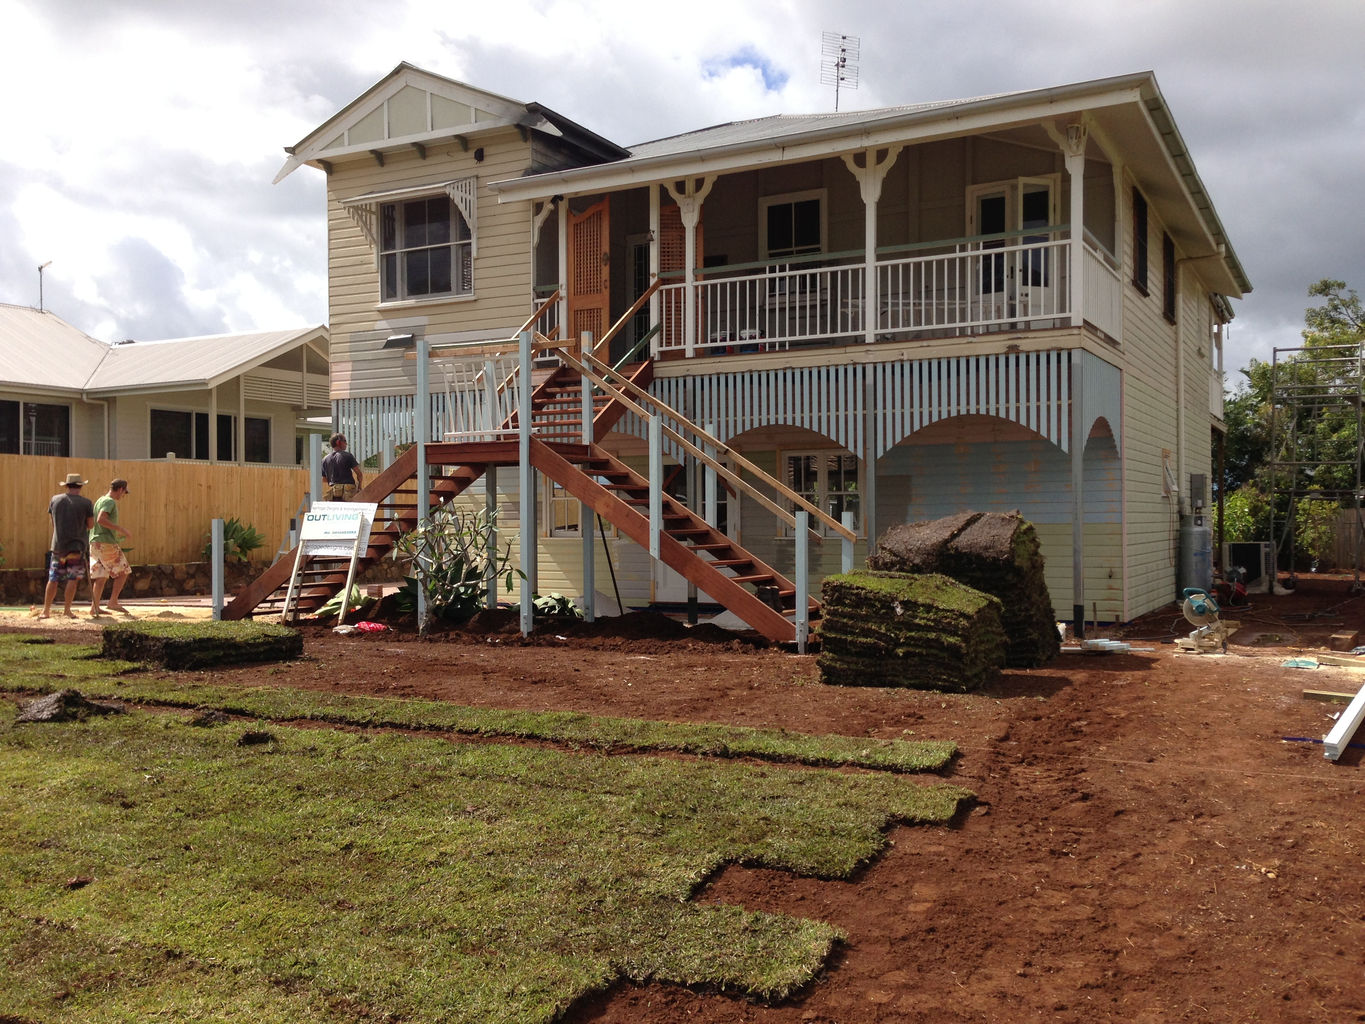 Soft leaf buffalo turf is laid and the skirting is put around the upper level under the verandah.